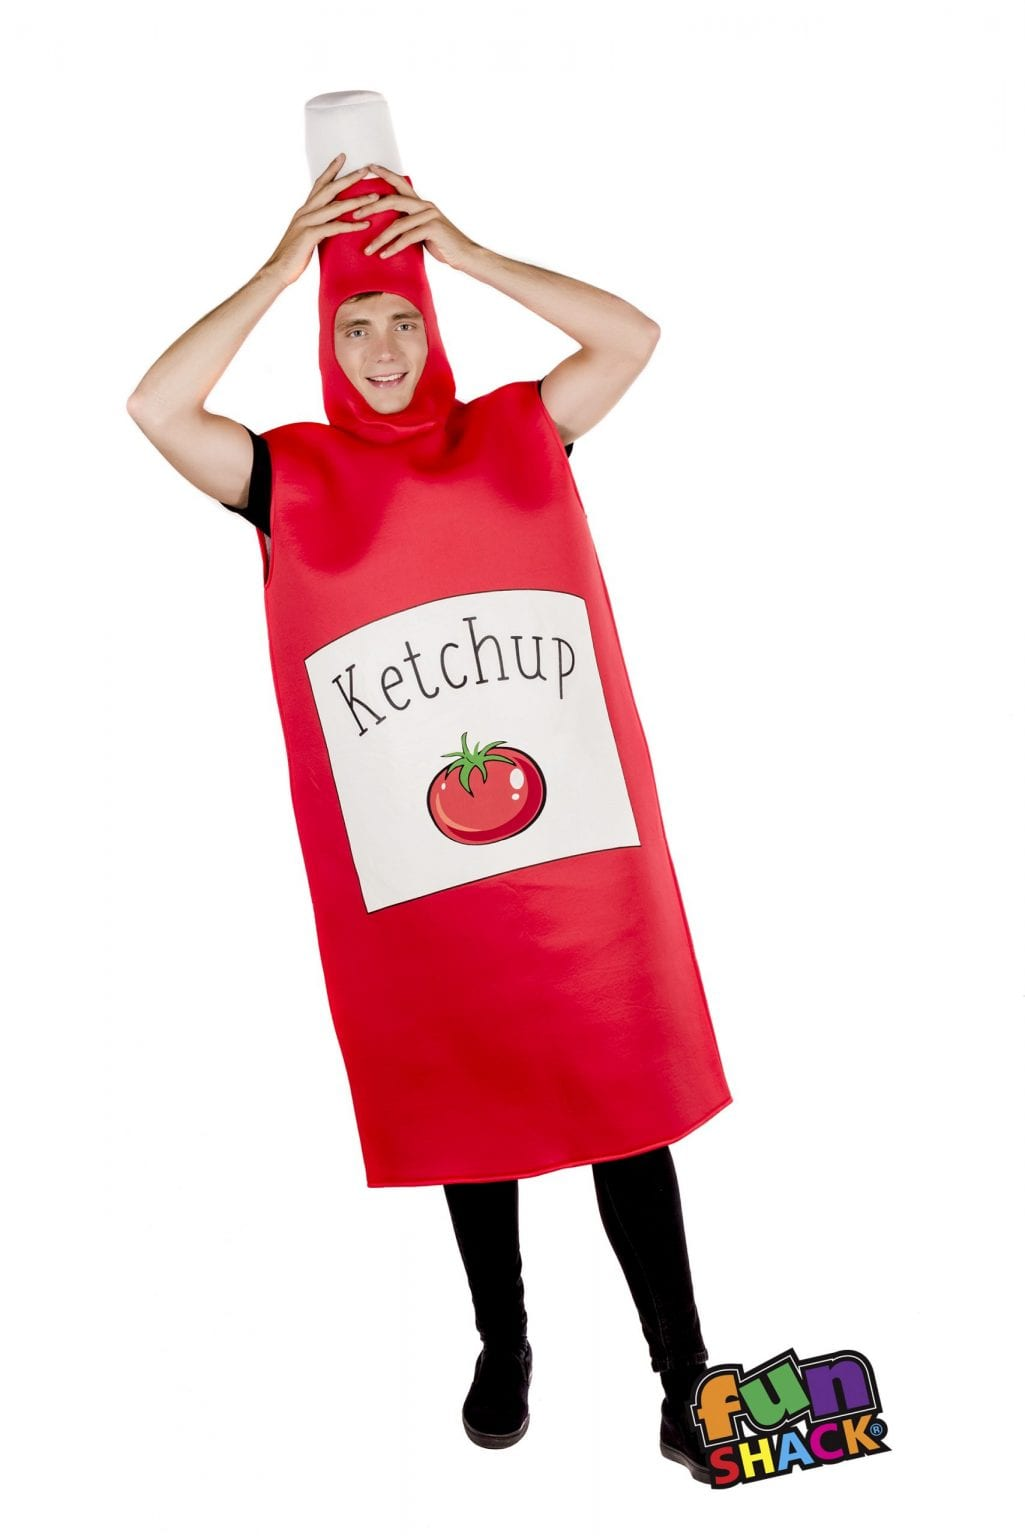 Ketchup Novelty Unisex Fancy Dress Costume